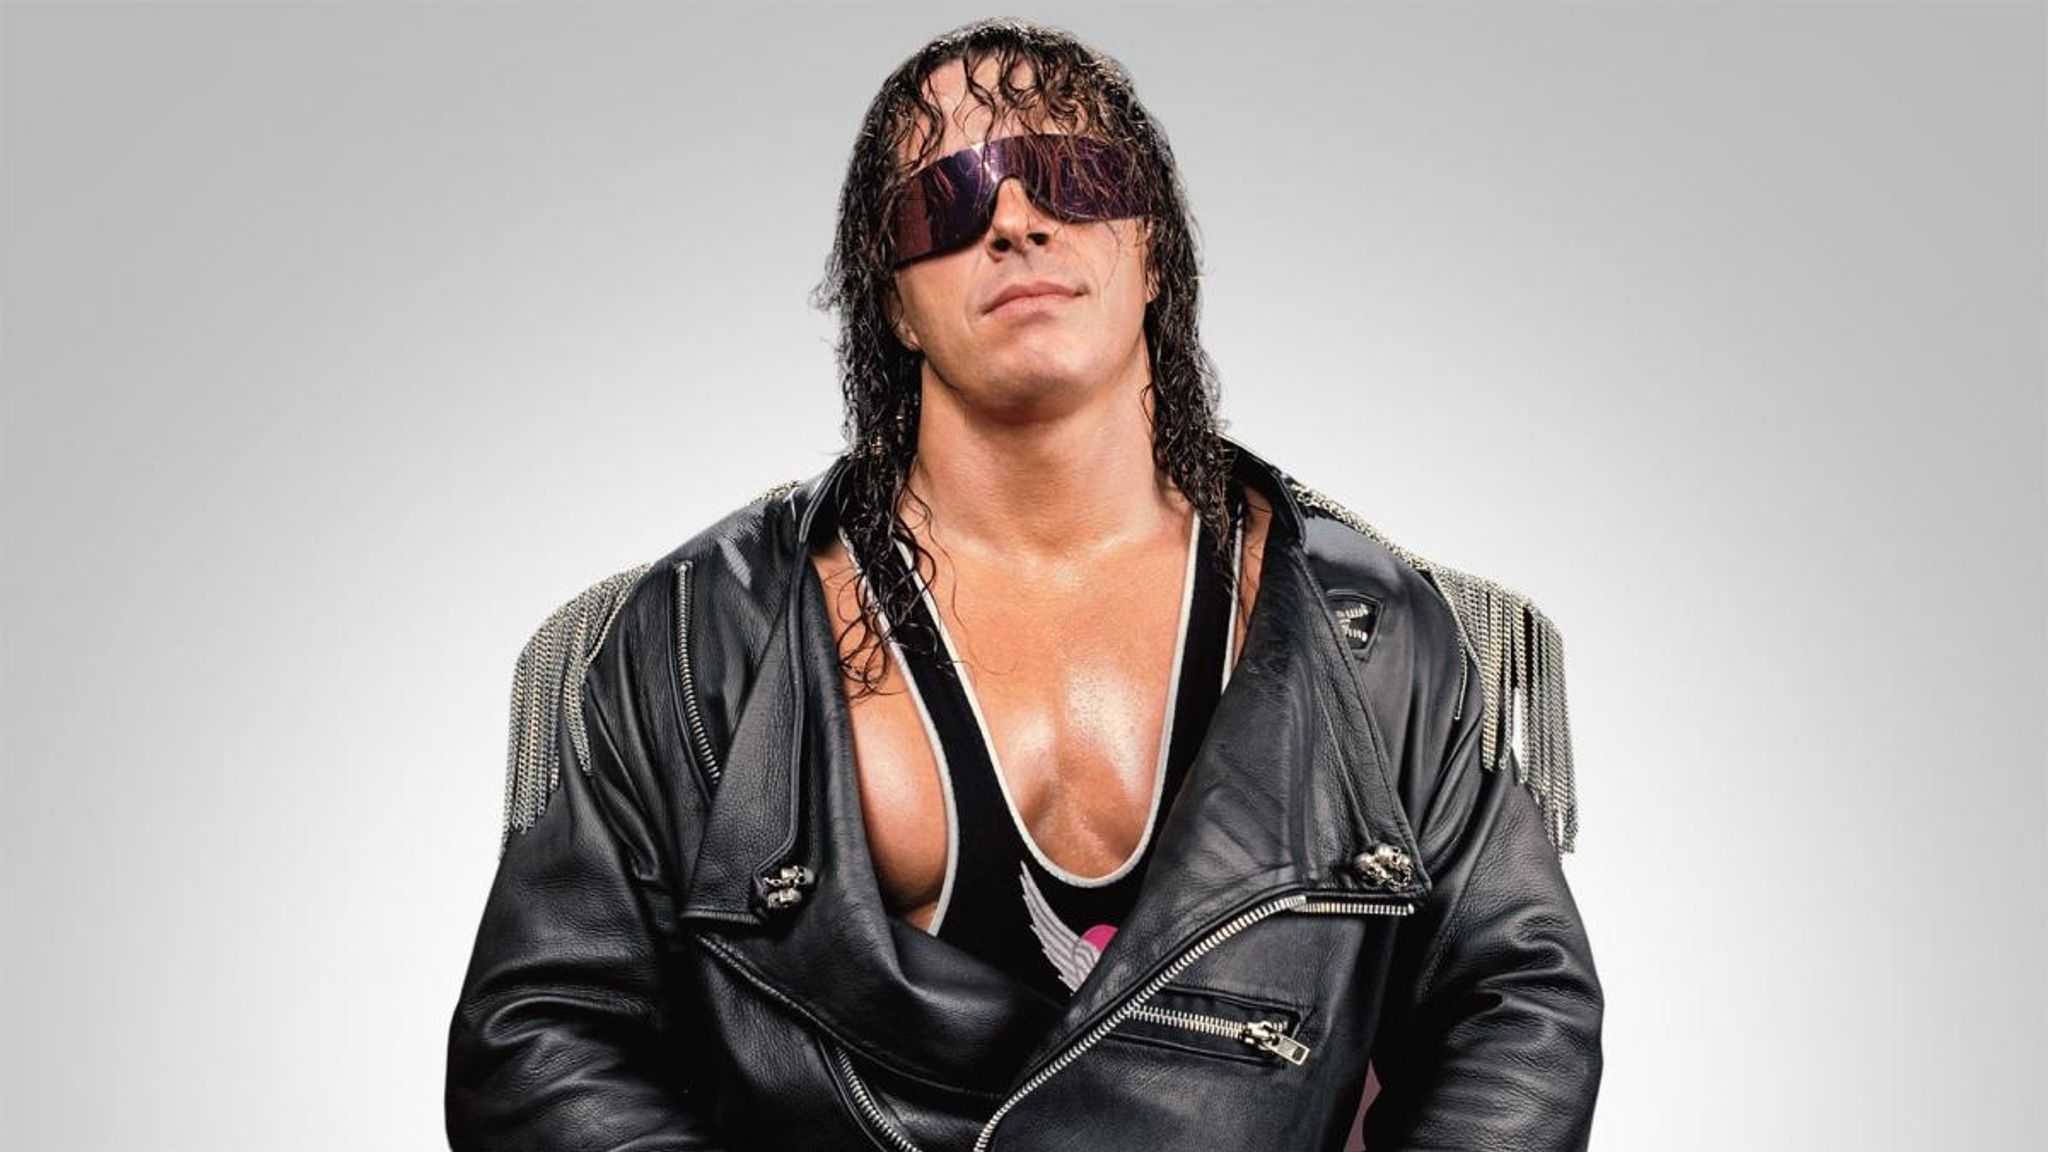 Bret The Hitman Hart Who Is He Today And What Is His Legacy Wwe News Sky Sports